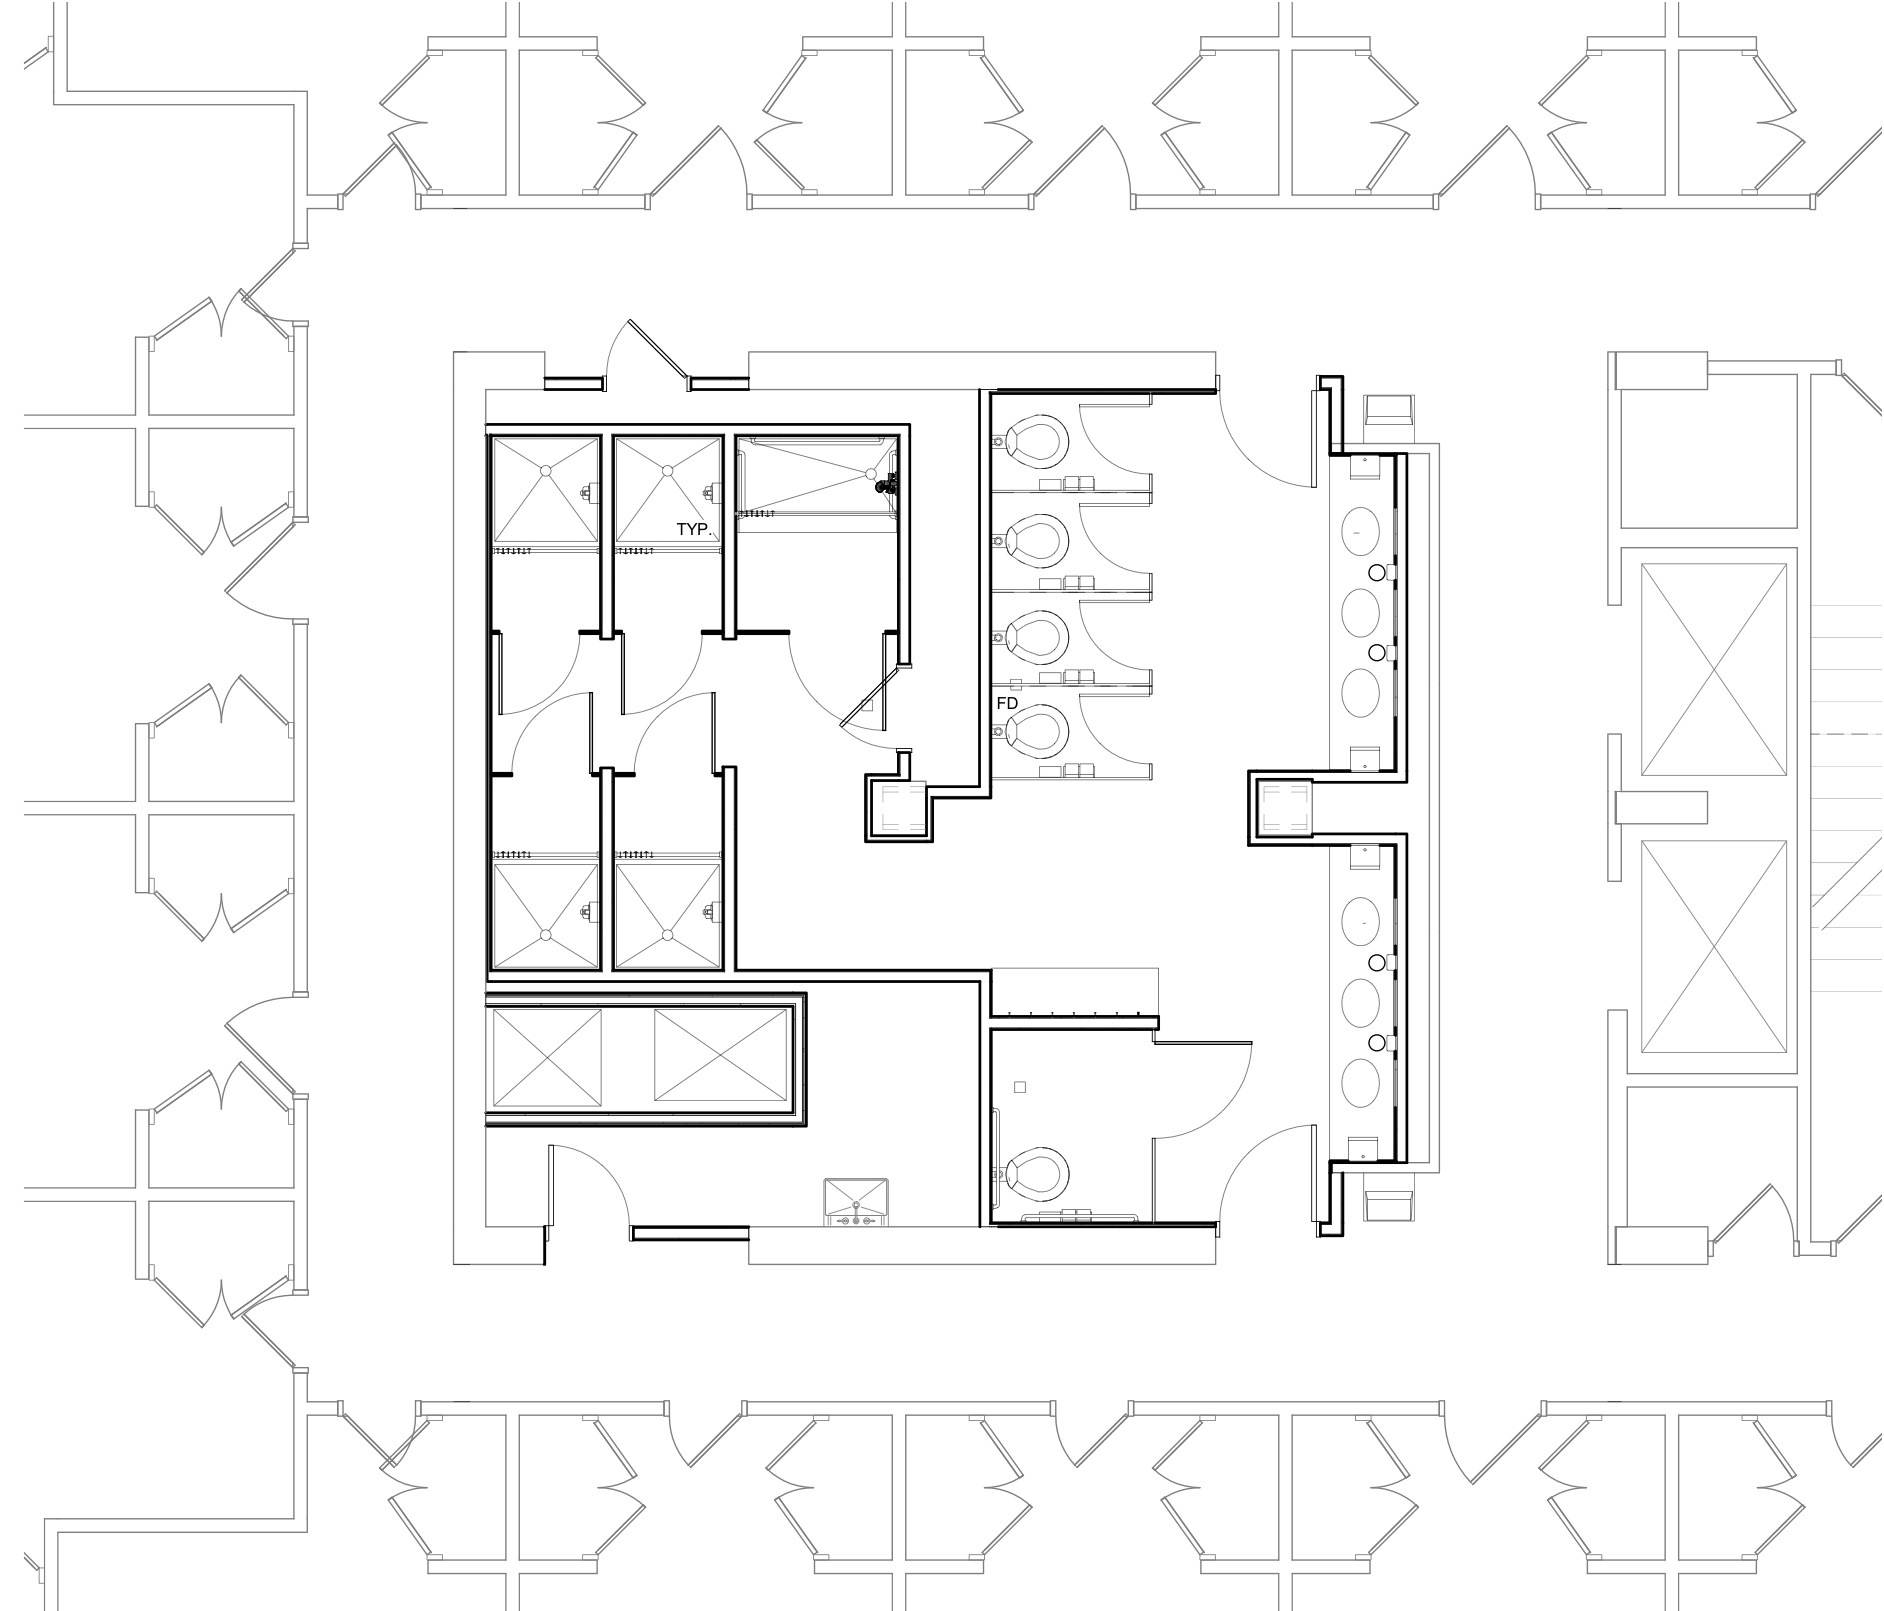 Lincoln/Washington Floor Plan After